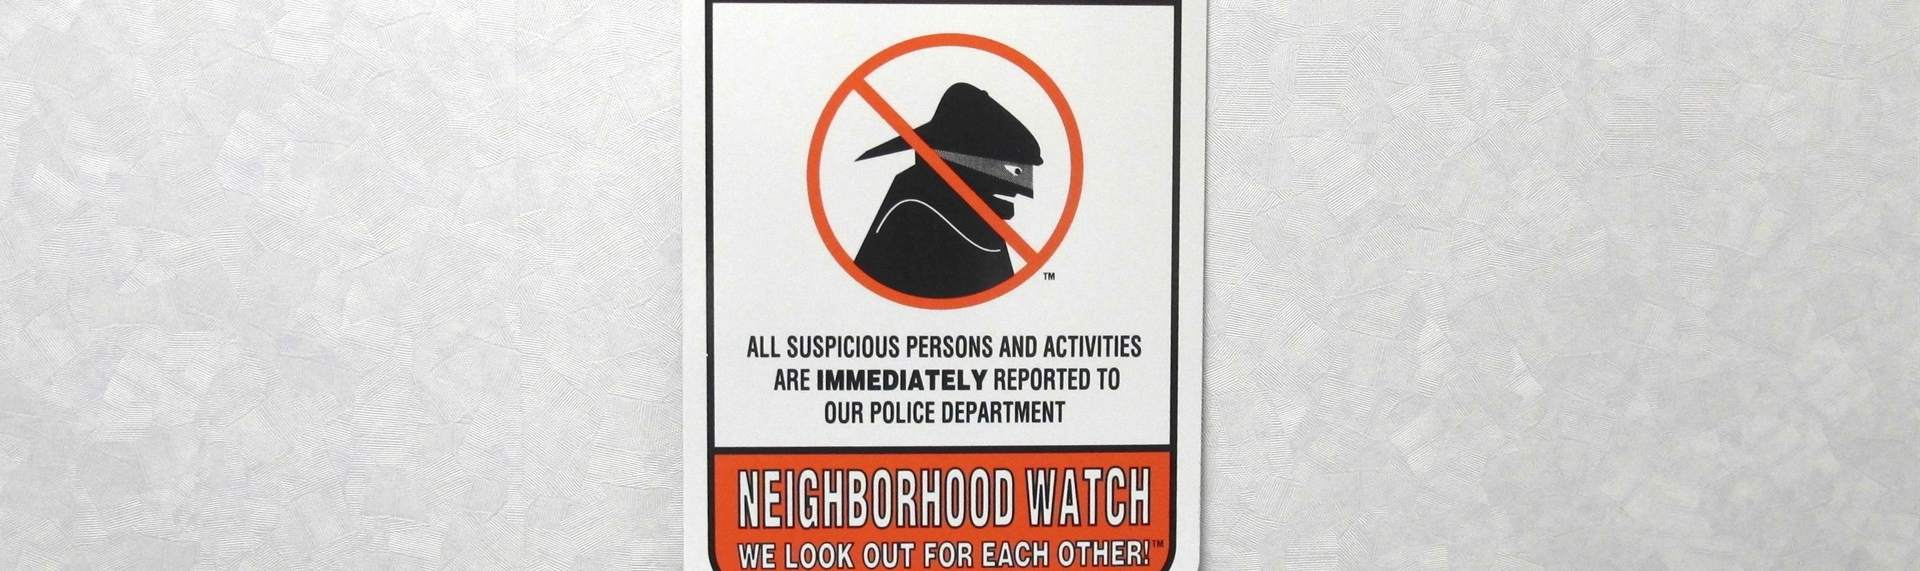 Join Our Crime Prevention Efforts! Start a Neighborhood Watch >>